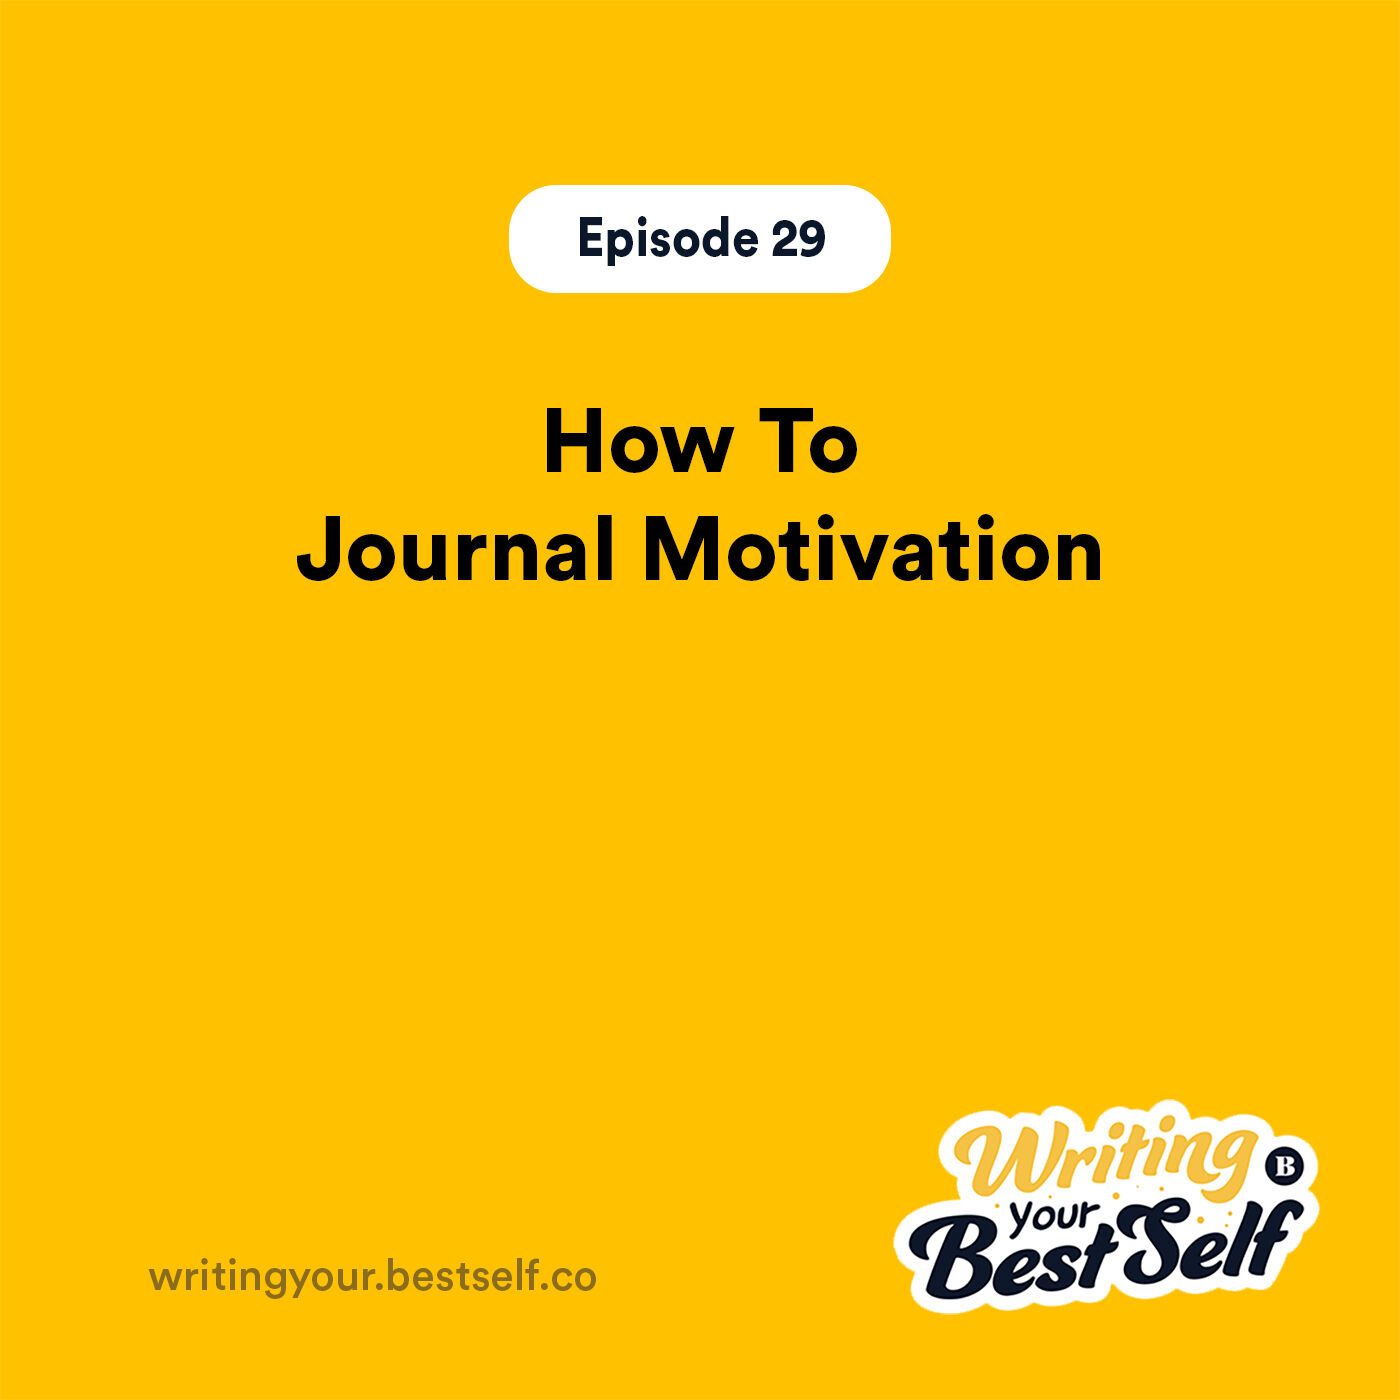 How To Journal Motivation